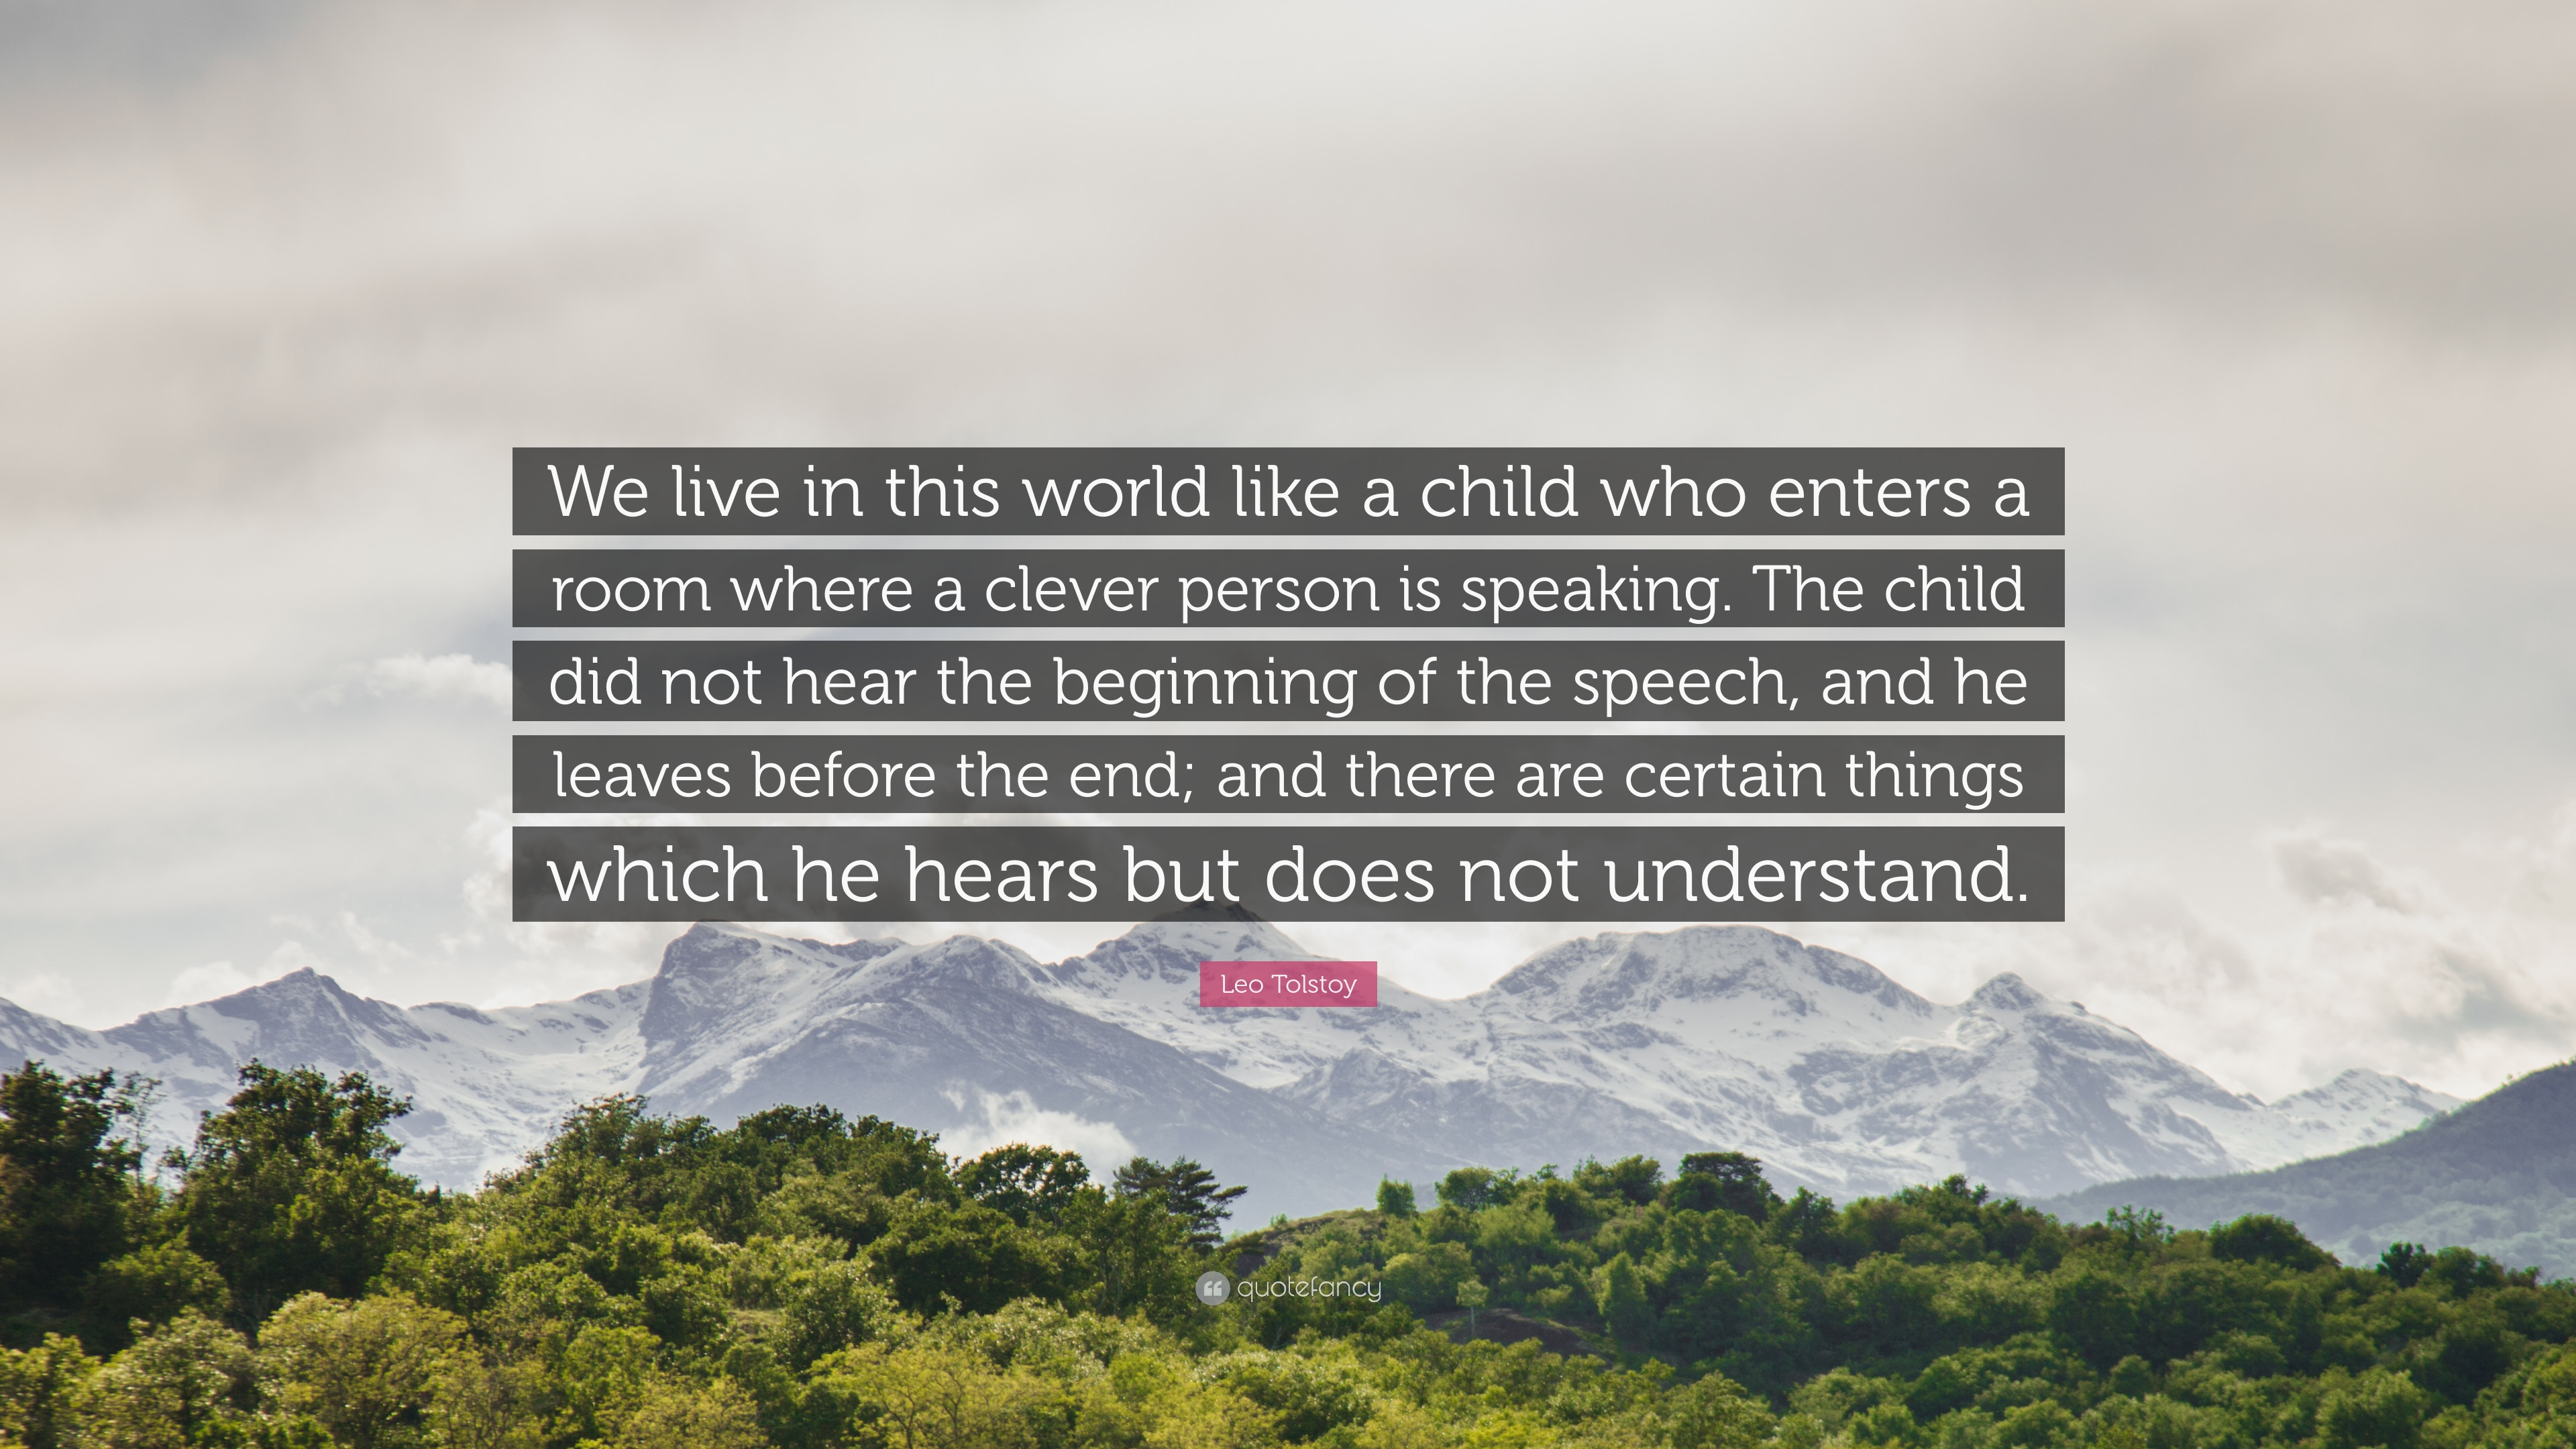 Leo Tolstoy Quote We Live In This World Like A Child Who Enters A